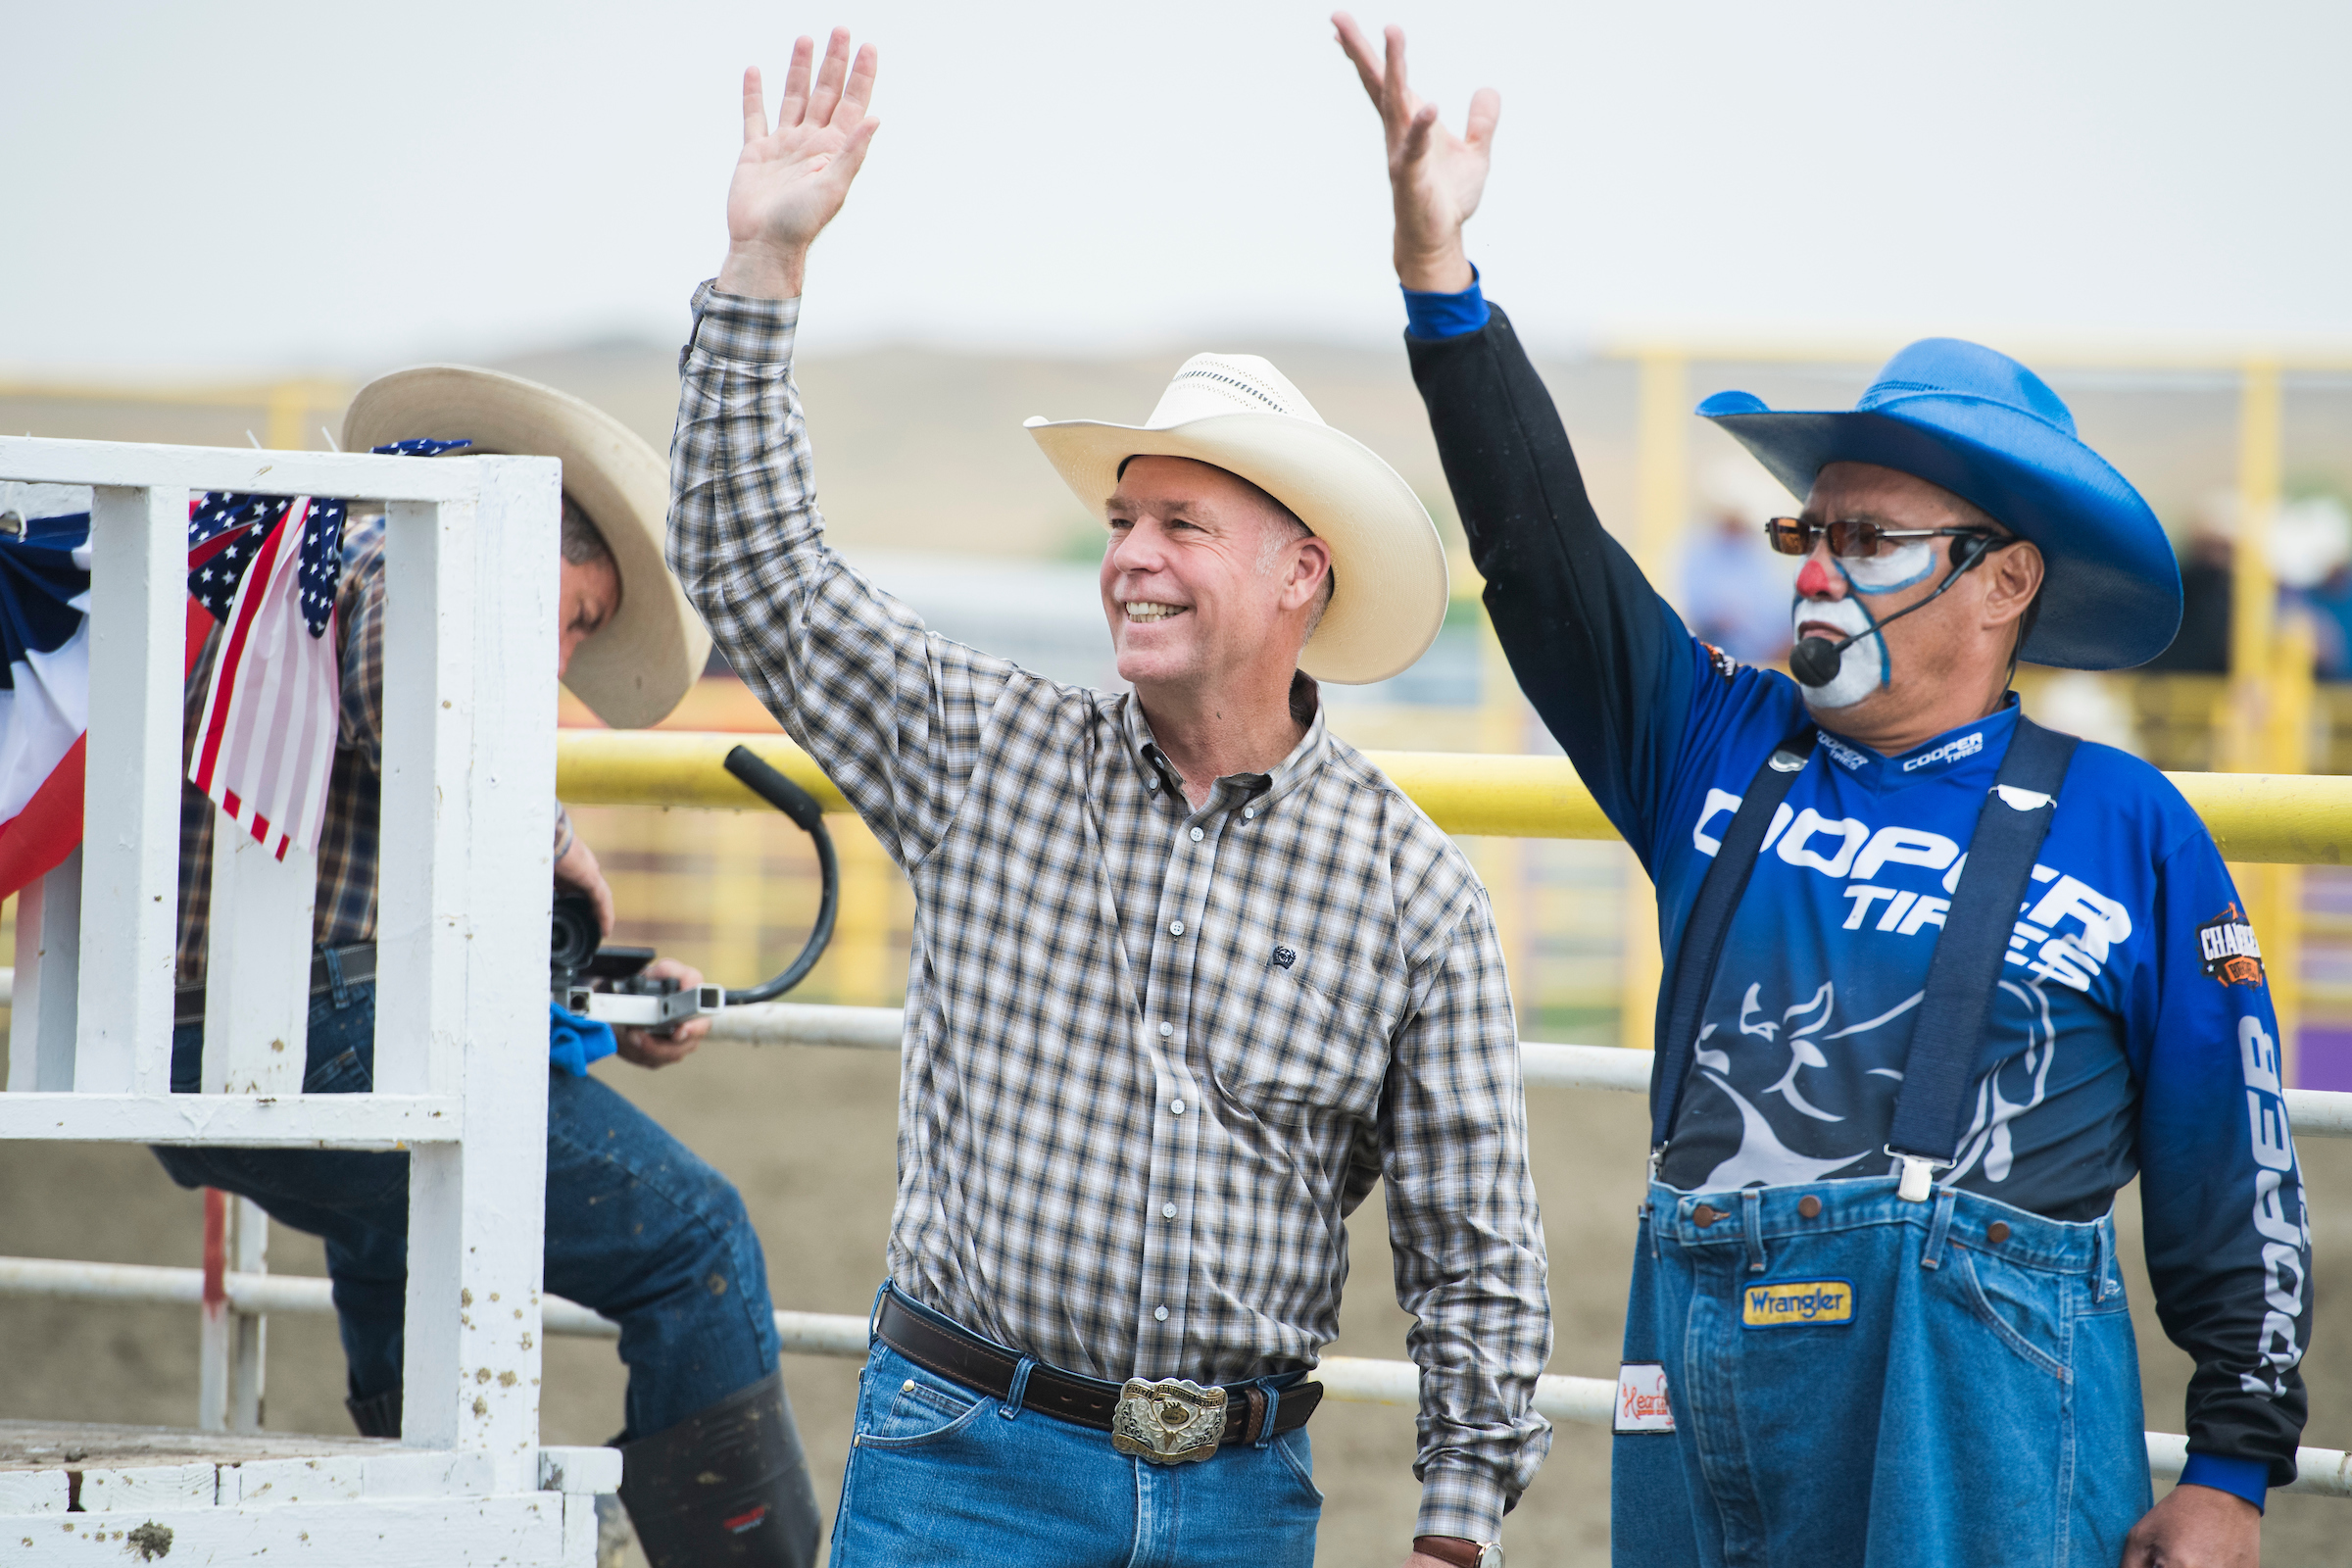 UNITED STATES - AUGUST 18: Rep. Greg Gianforte, R-Mont., waves to constituents at the Crow Fair in Crow Agency, Mont., on August 18, 2018. Gianforte is being challenged by Democrat Kathleen Williams. (Photo By Tom Williams/CQ Roll Call)